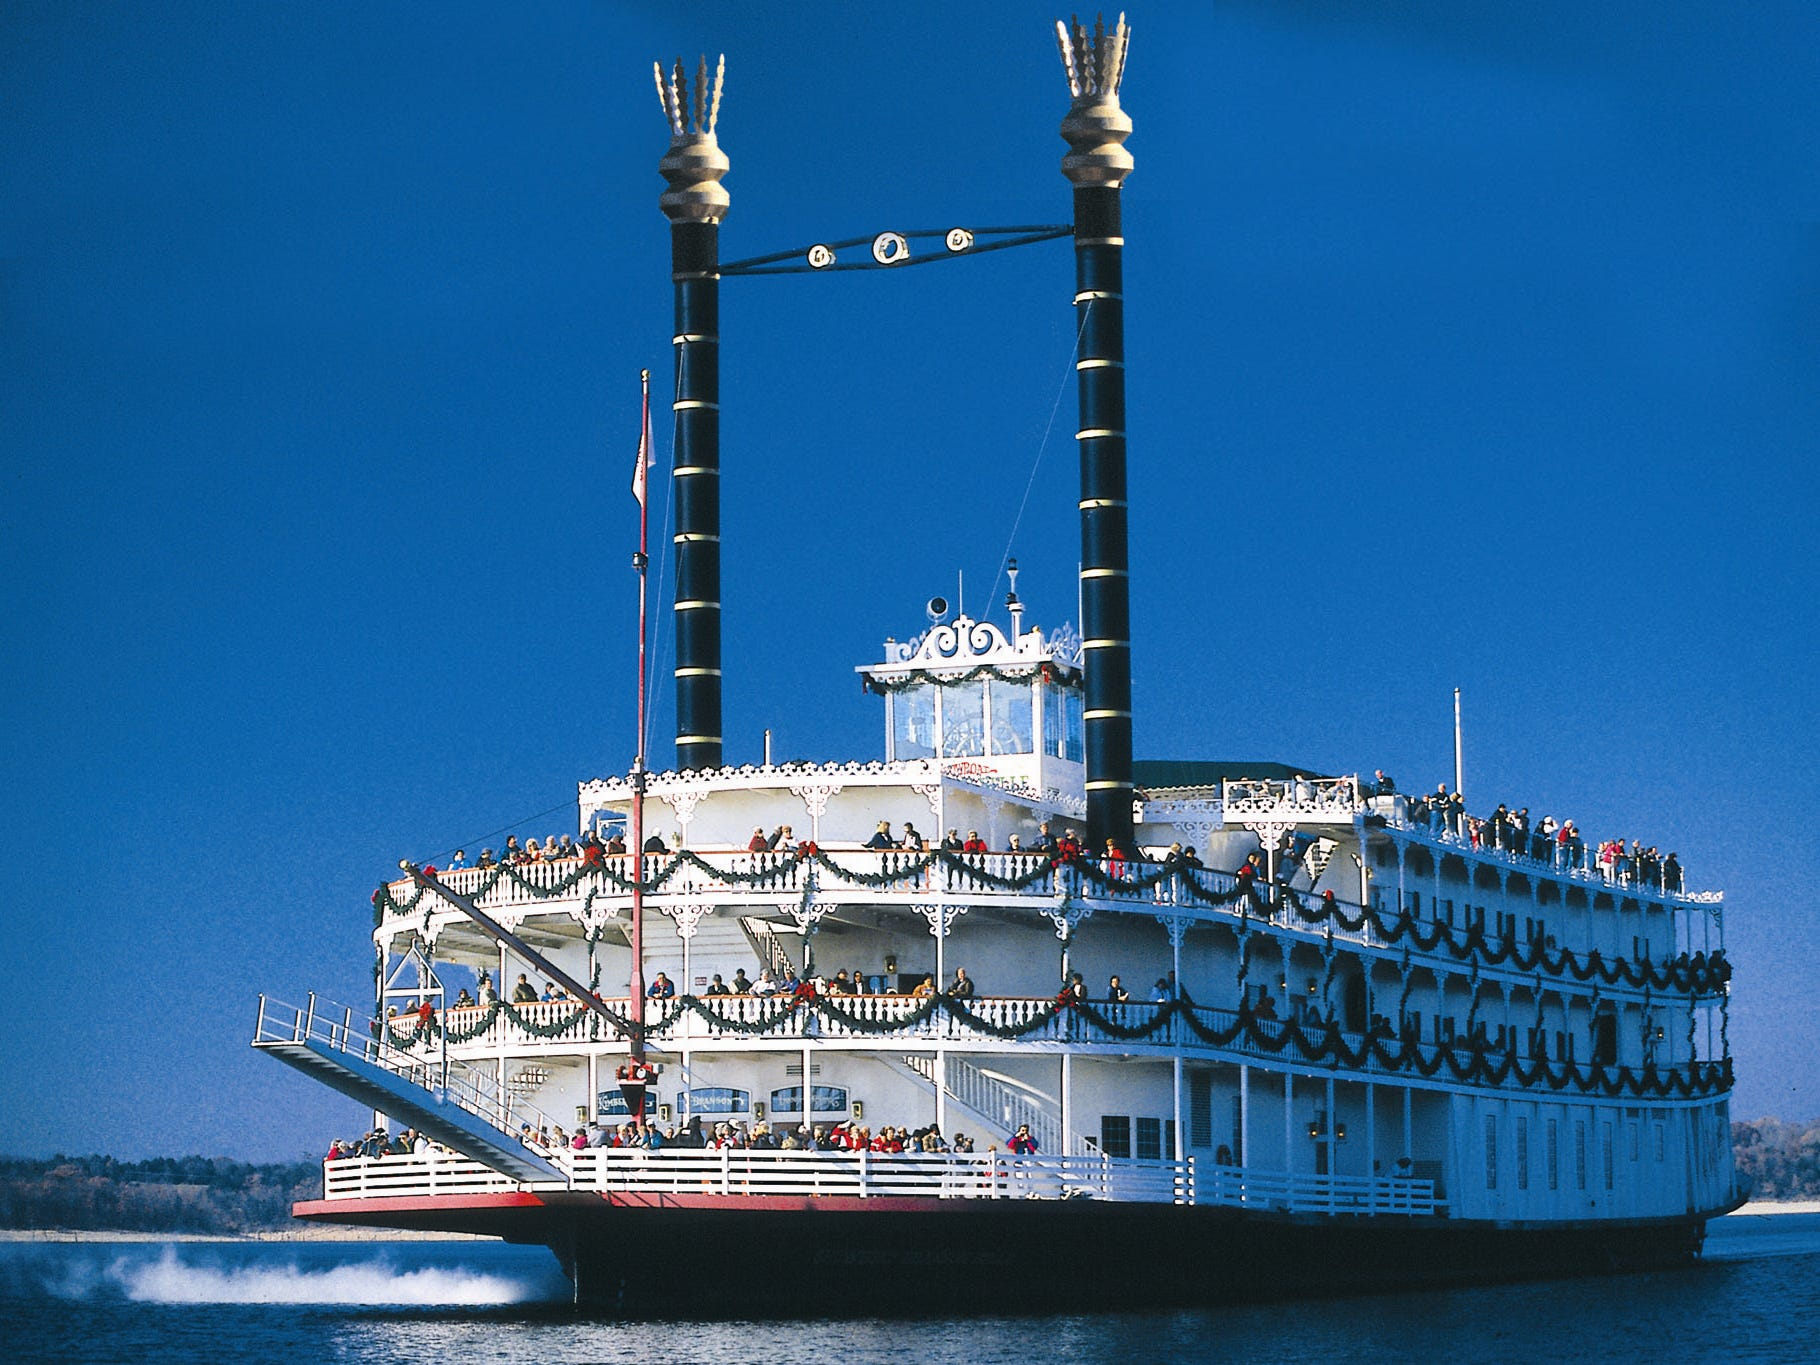 Visitors can take a ride aboard the Showboat Branson Belle, which is run by the Silver Dollar City folks, for a Christmas dinner show.